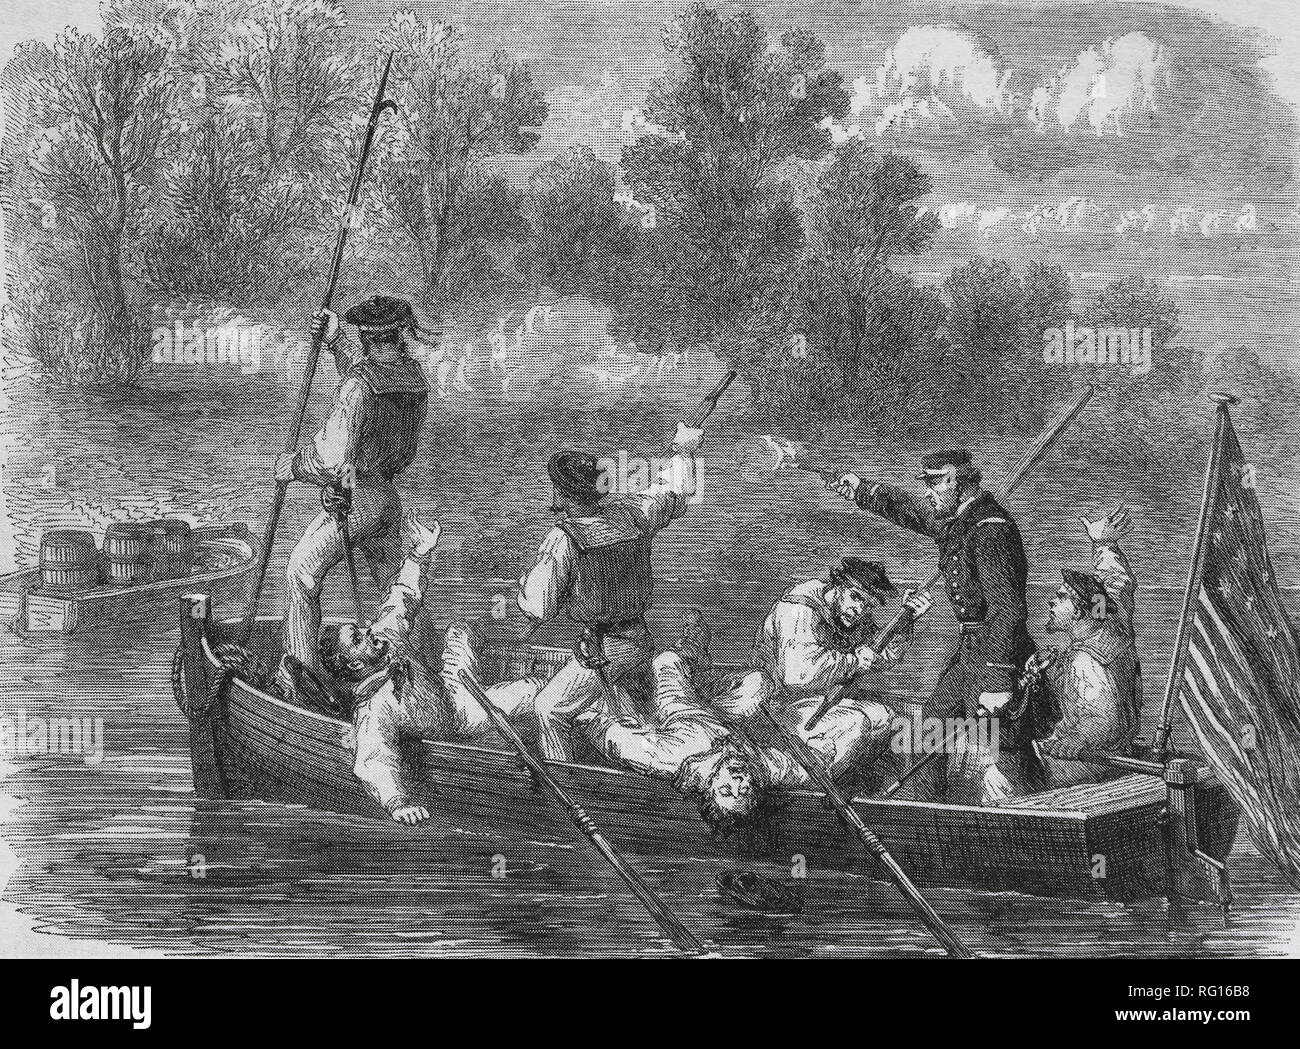 American Civil War (1861-85). A trap set by Confederates. Captain of Union Army and crew on small boat. Engraving by Fr. Vizetelly. - Stock Image